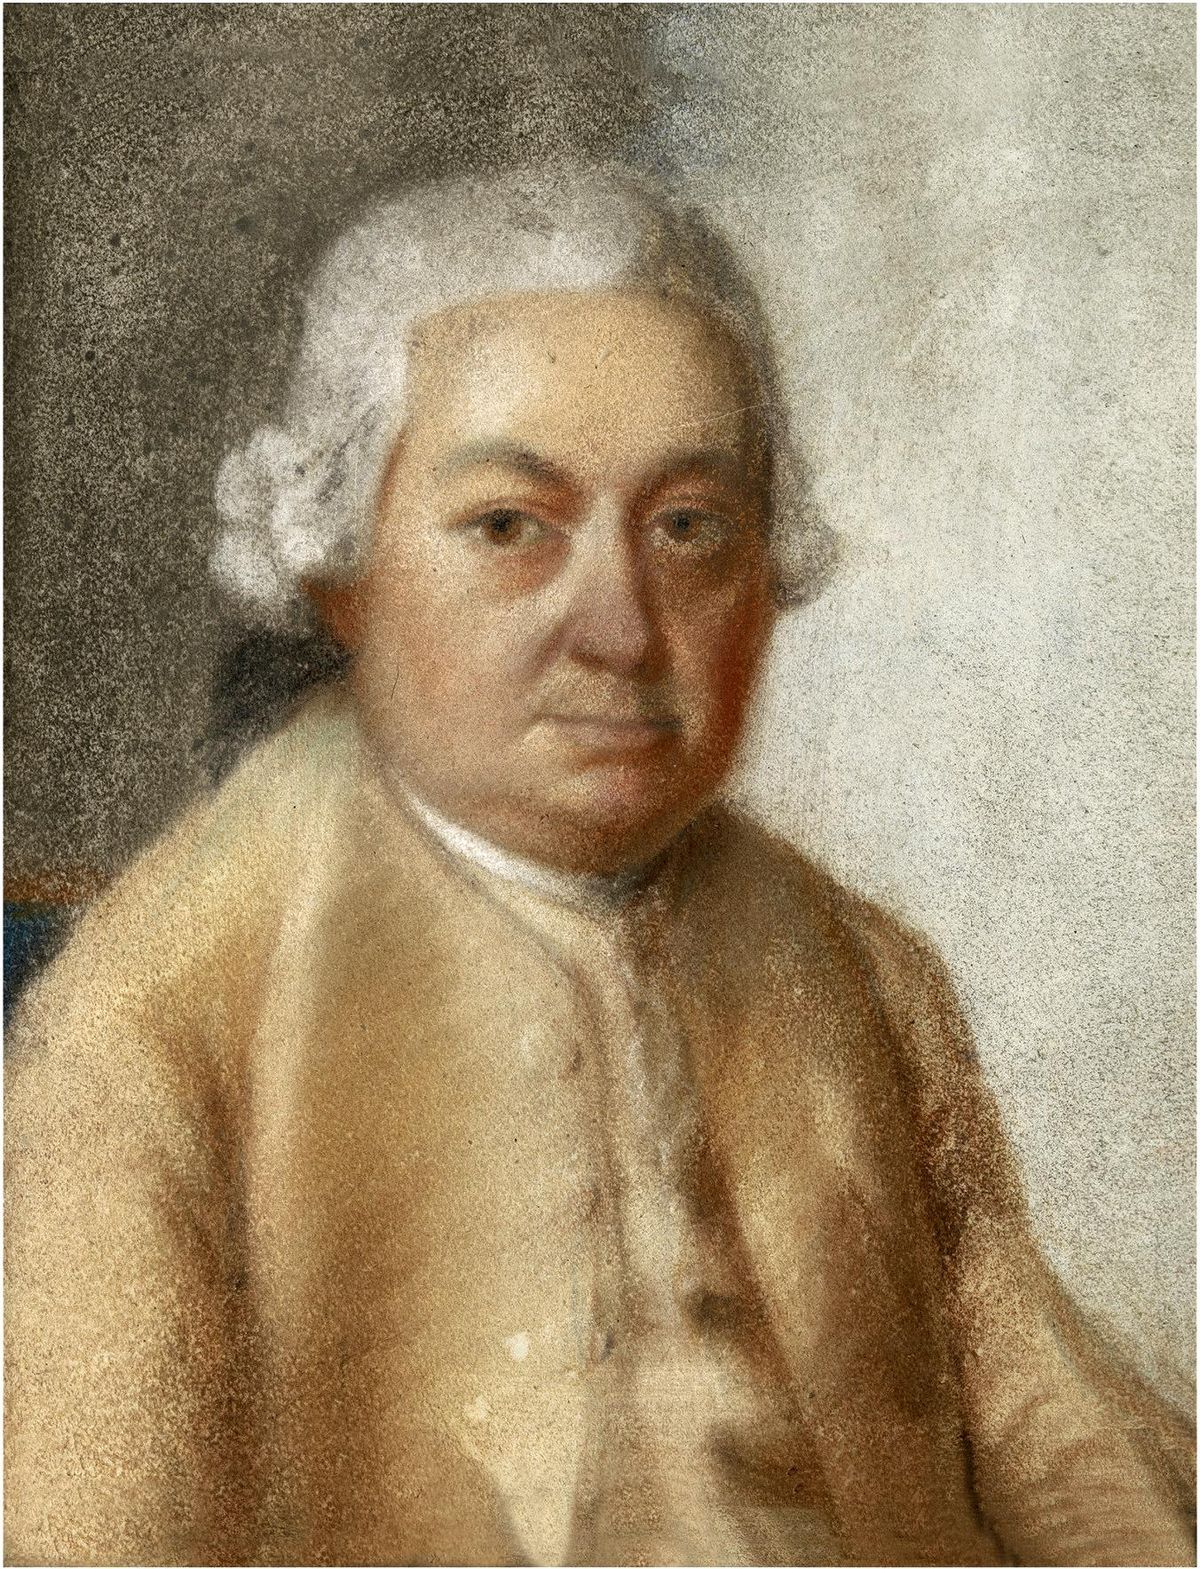 c.p.e. bach essay on the true Carl philipp emanuel bach (8 march 1714 – 14 december 1788),  zu spielen ( an essay on the true art of playing keyboard instruments),.